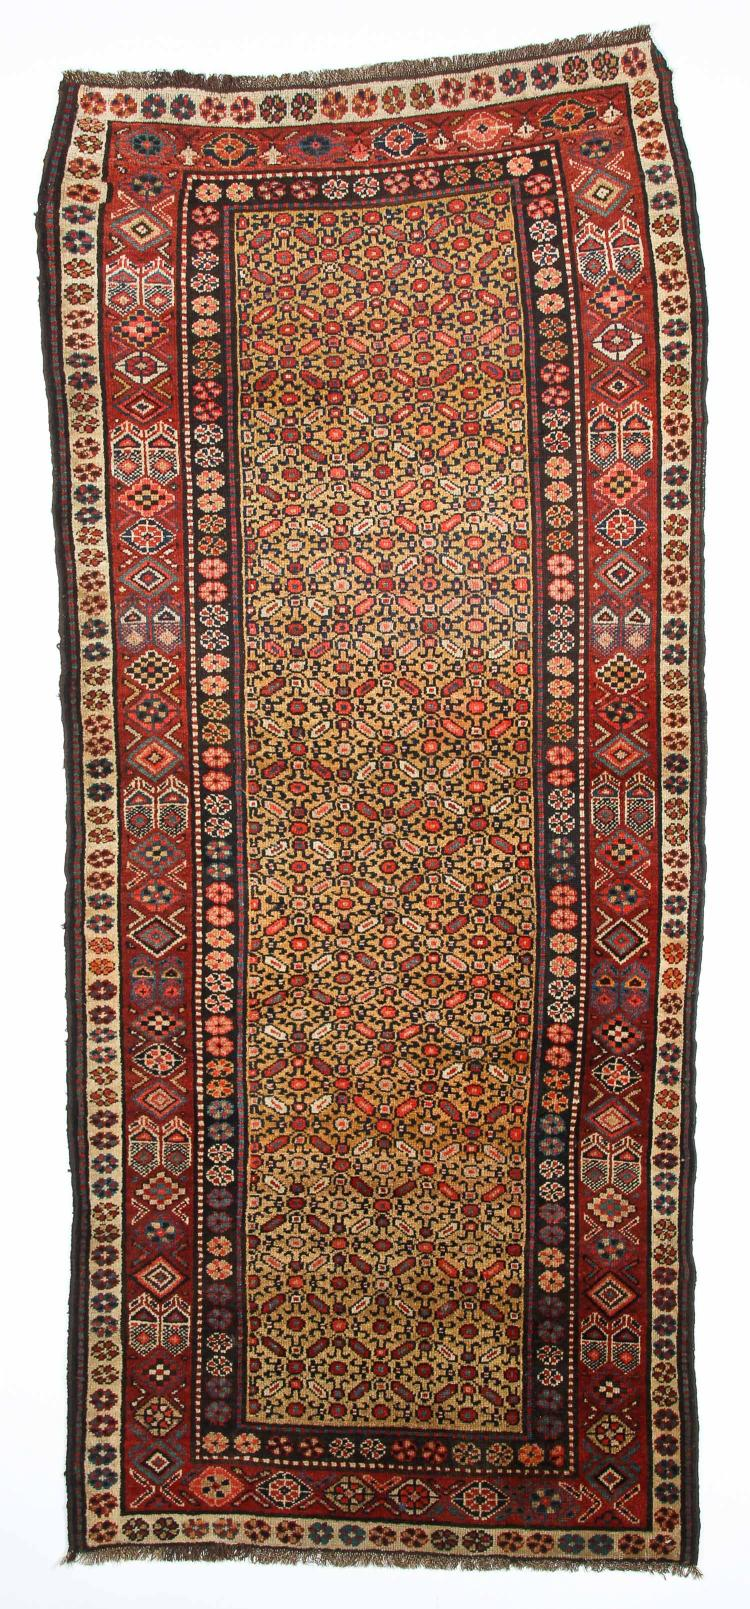 Antique Northwest Persian Kurd Rug: 3'8